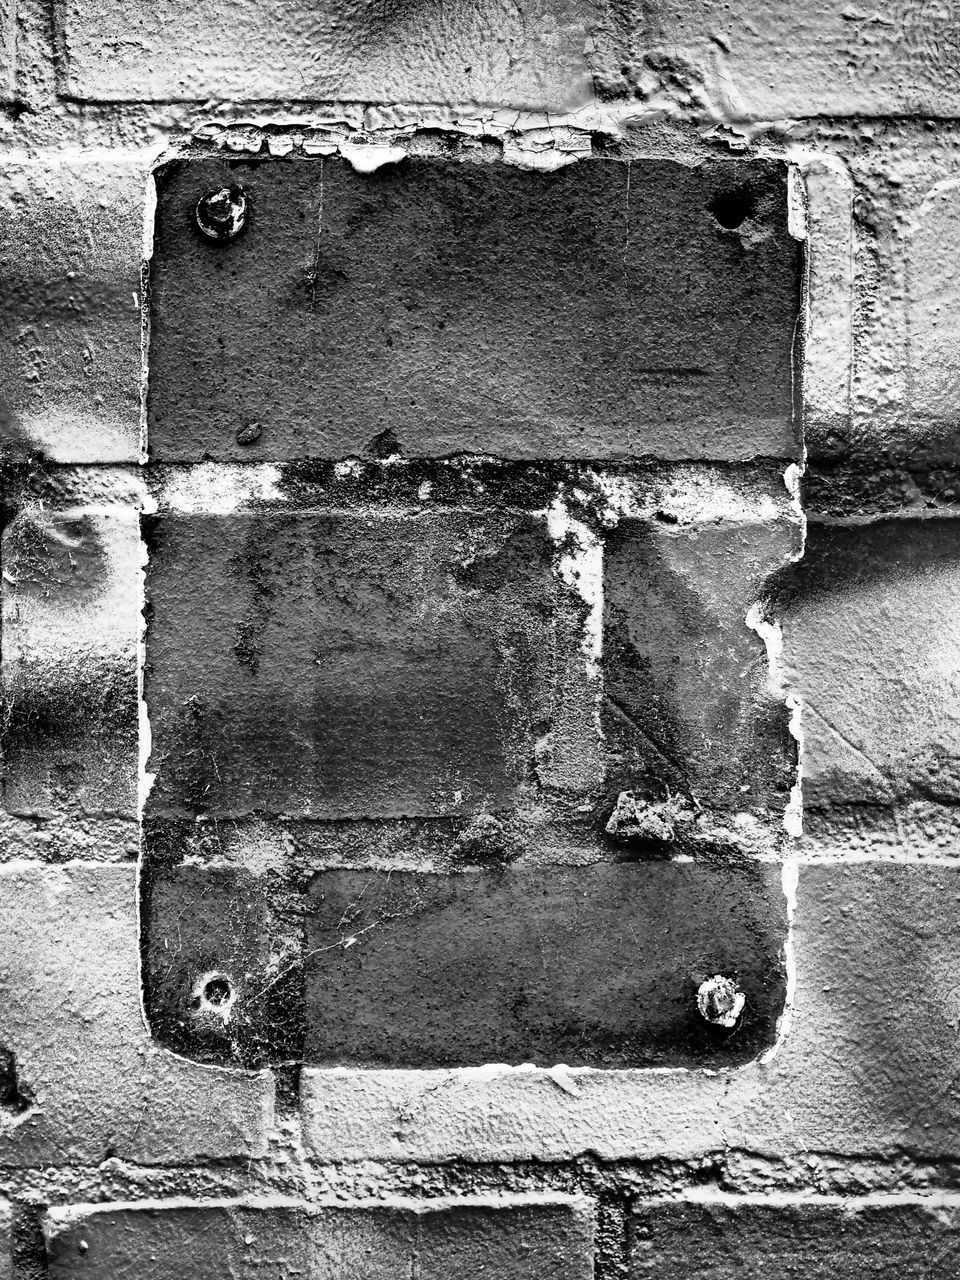 built structure, wall - building feature, old, weathered, brick wall, textured, architecture, building exterior, close-up, hinge, no people, day, backgrounds, outdoors